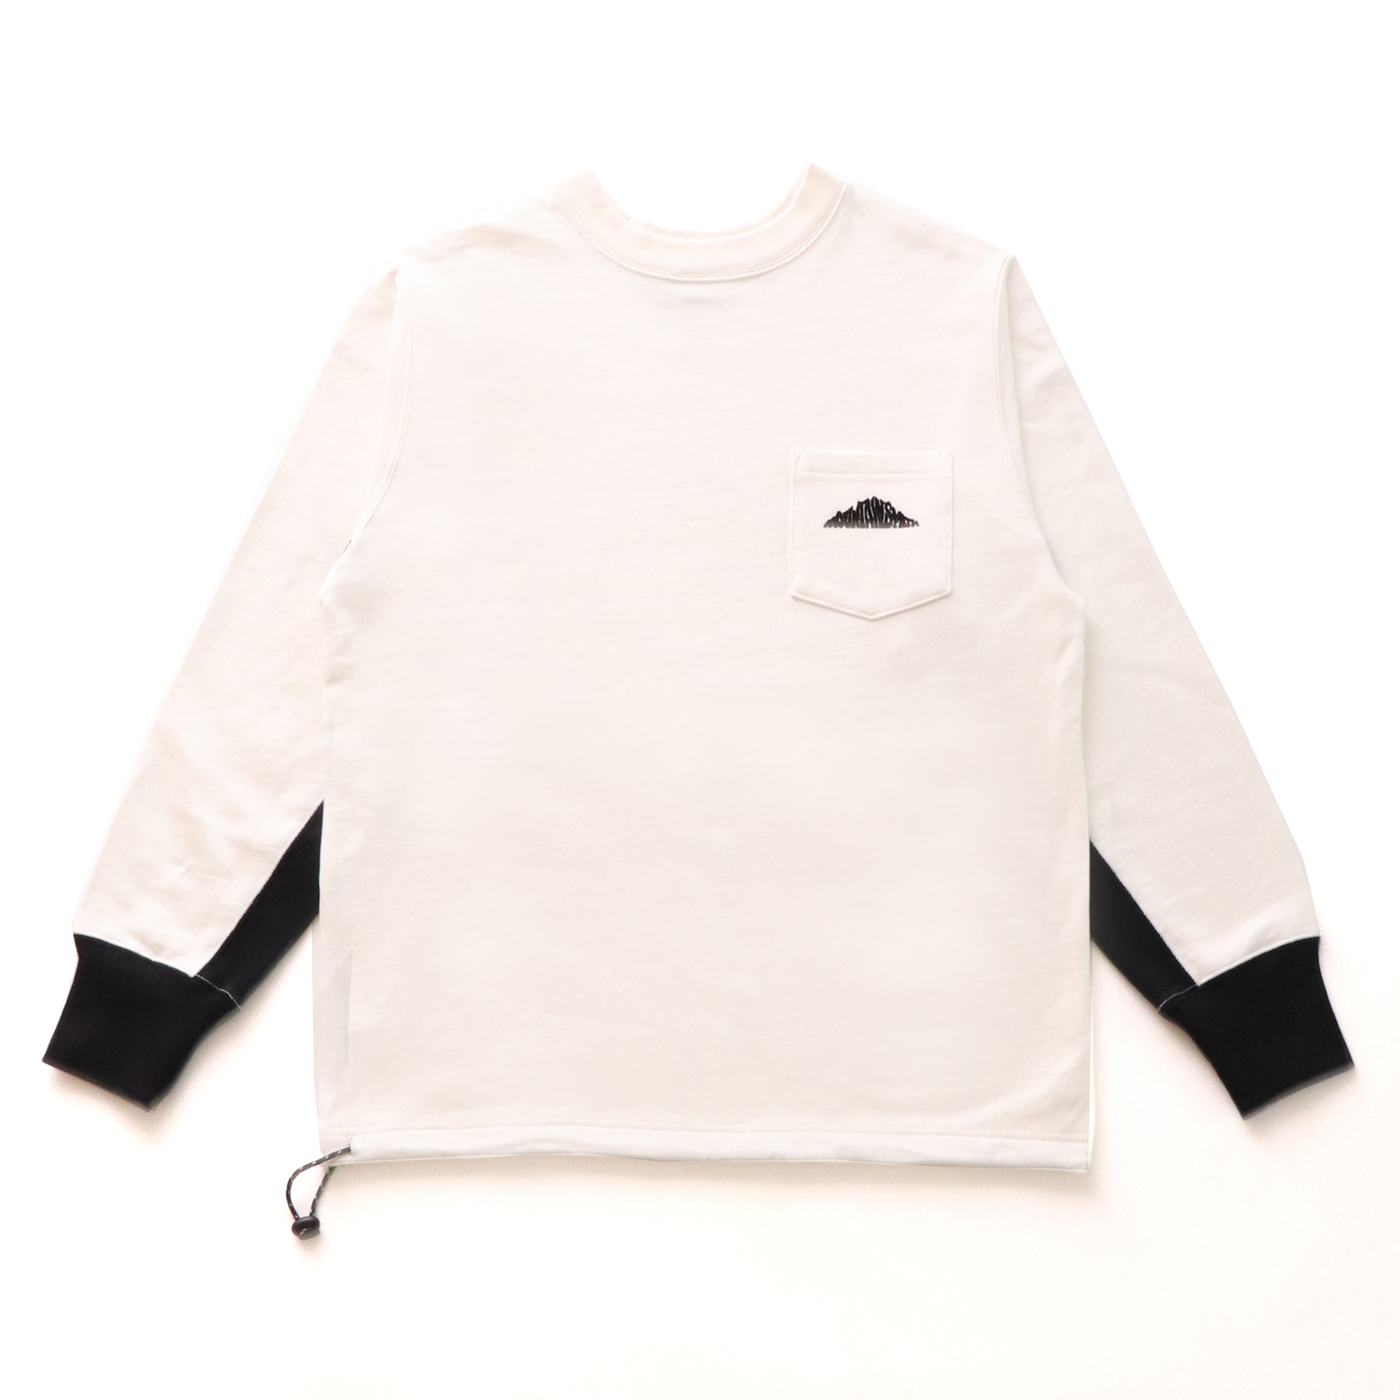 product: Granby Recycled Crew / color: OFF 1